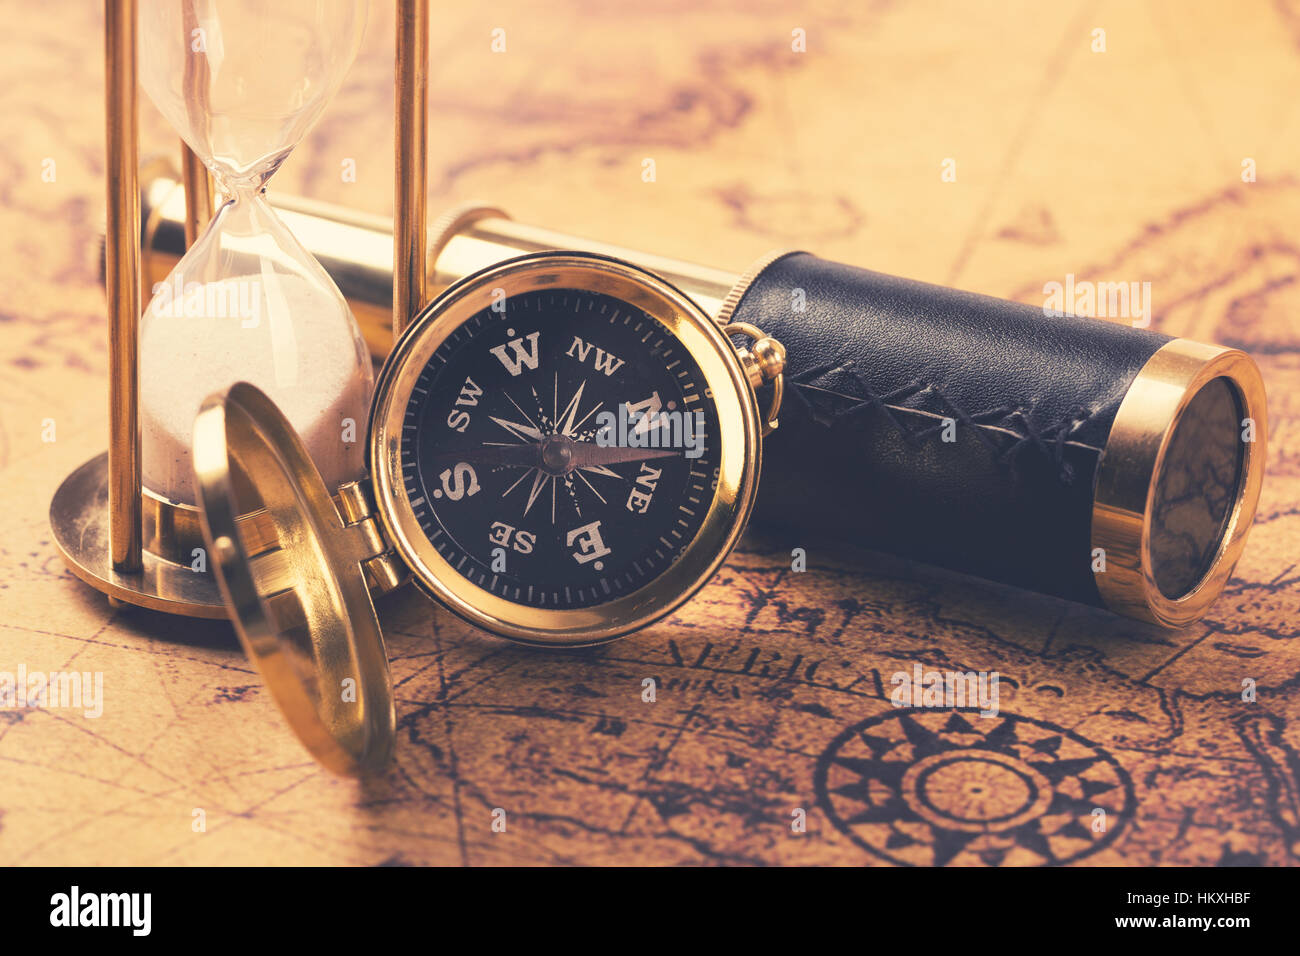 compass and nautical vintage equipment on old world map - Stock Image